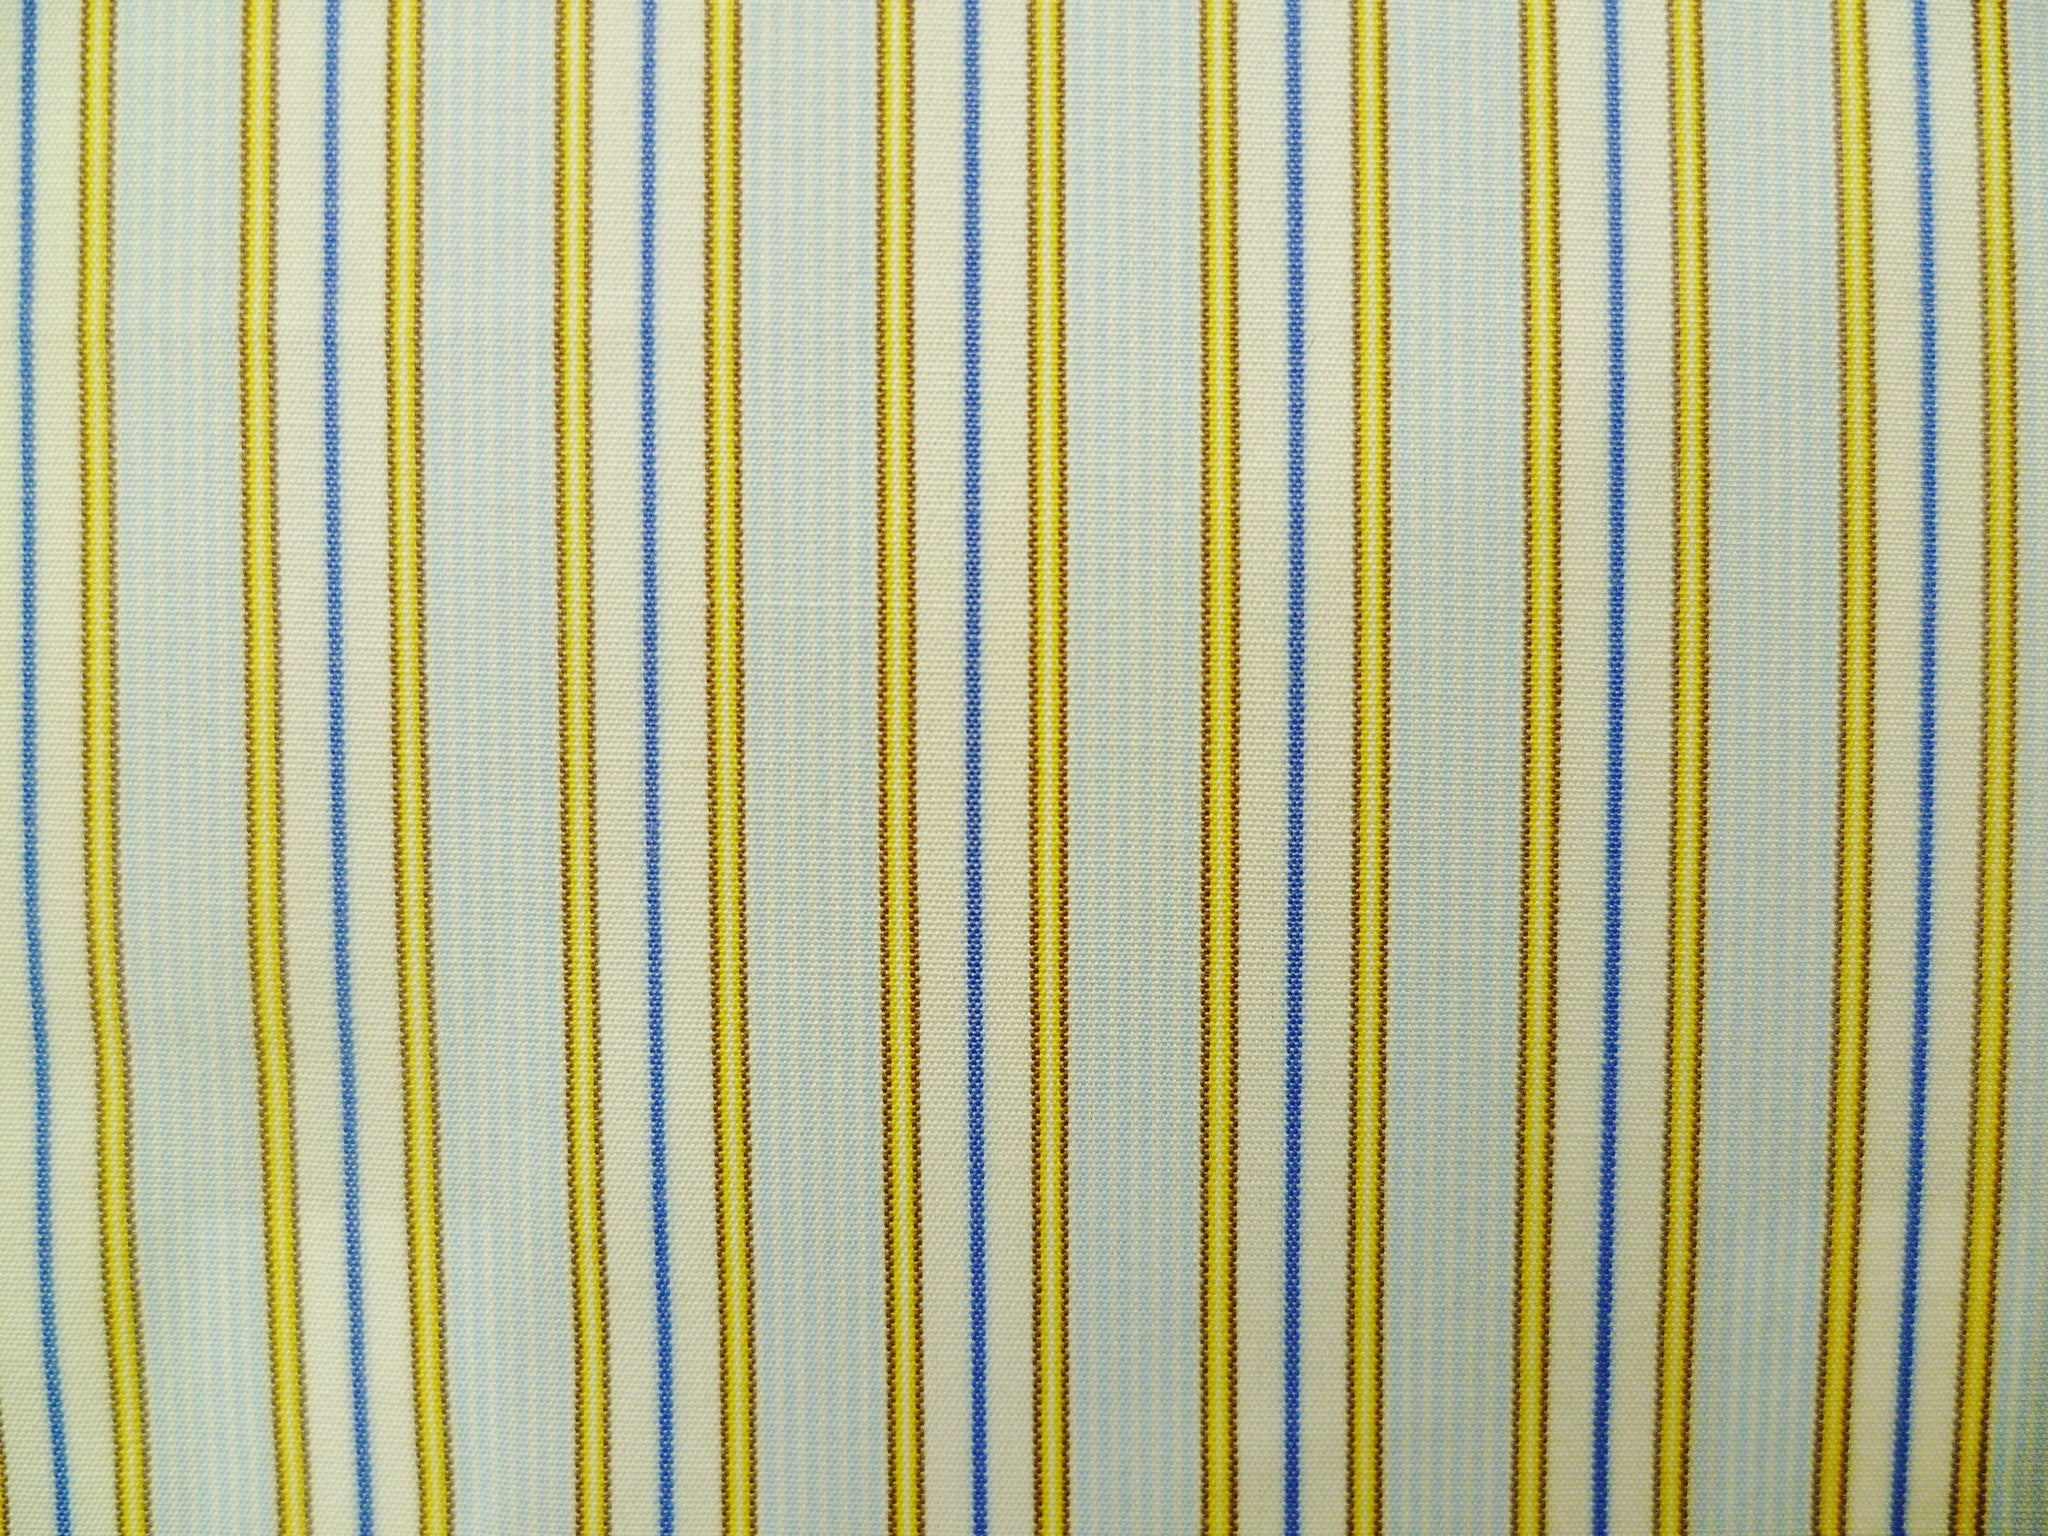 Yellow-Brown, Airforce Blue with Baby Blue and White Striped Cotton